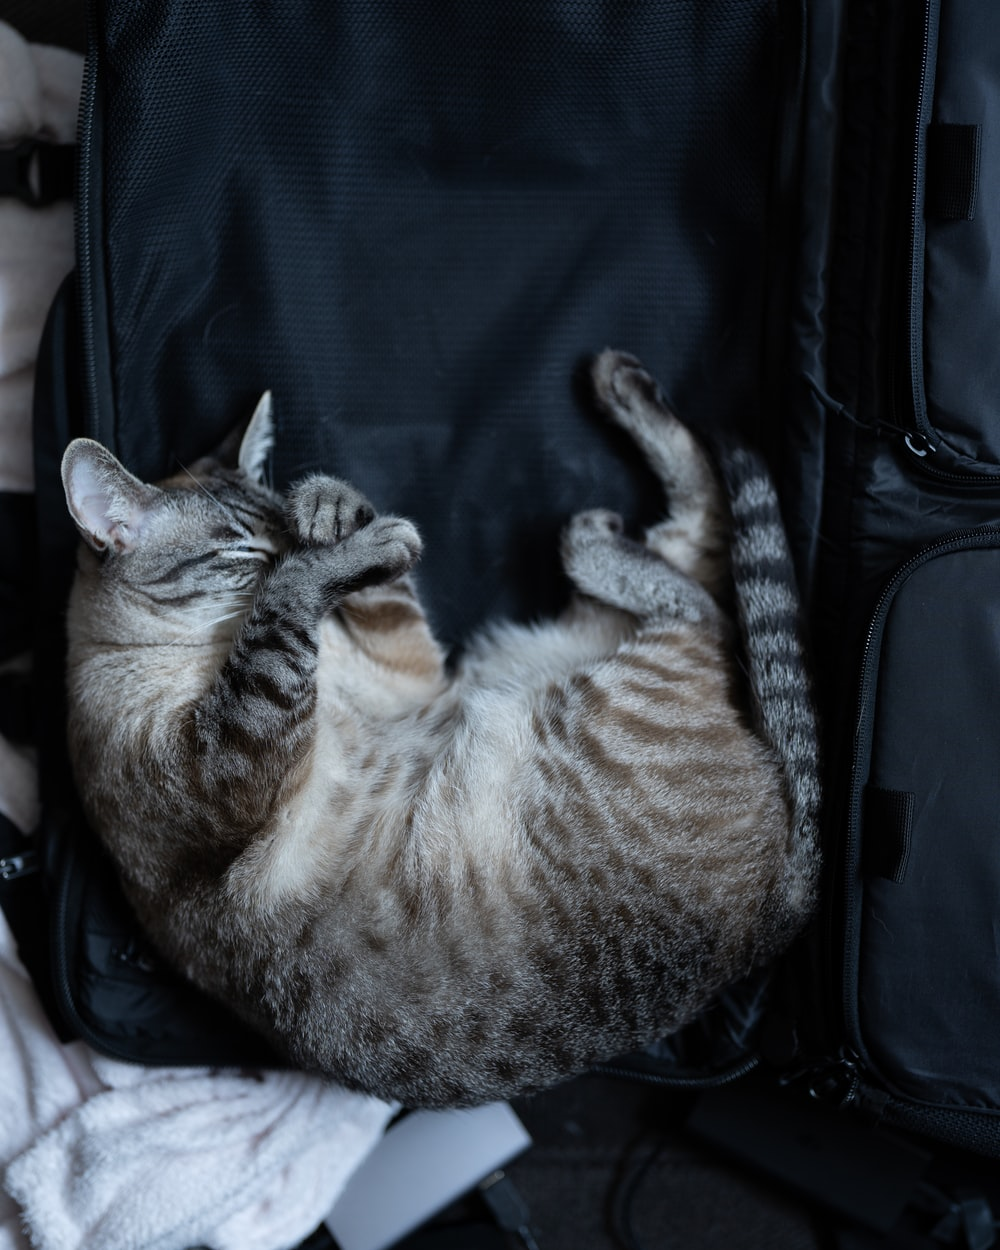 silver tabby cat lying on black textile